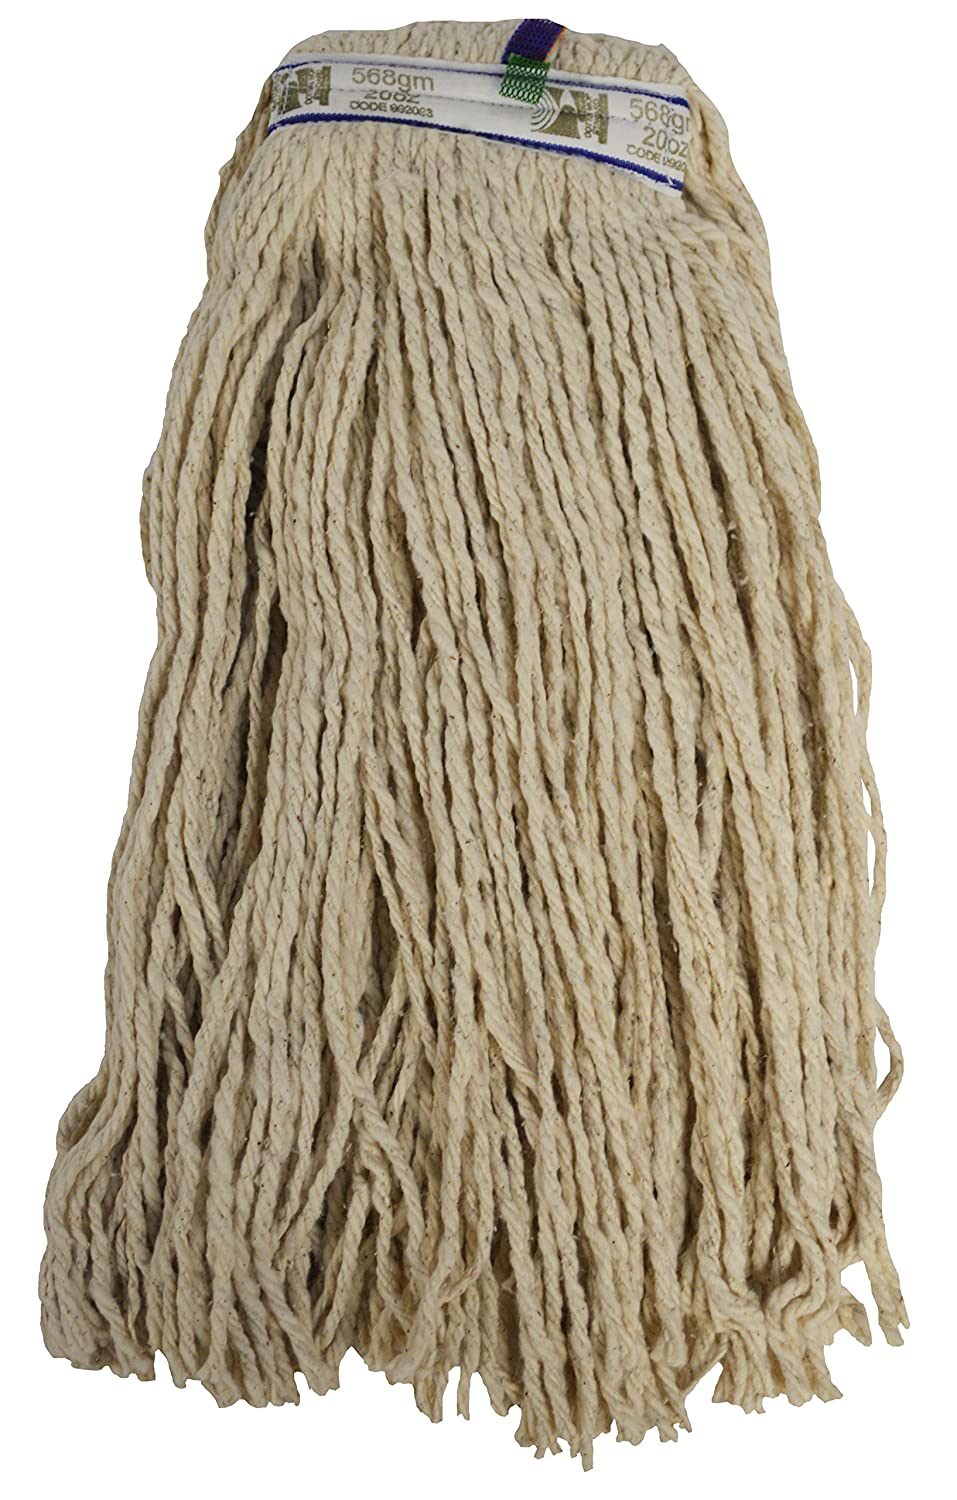 341 g Pack of 50 Cut End SYR 991743 Traditional PY Cotton Kentucky Mop Head